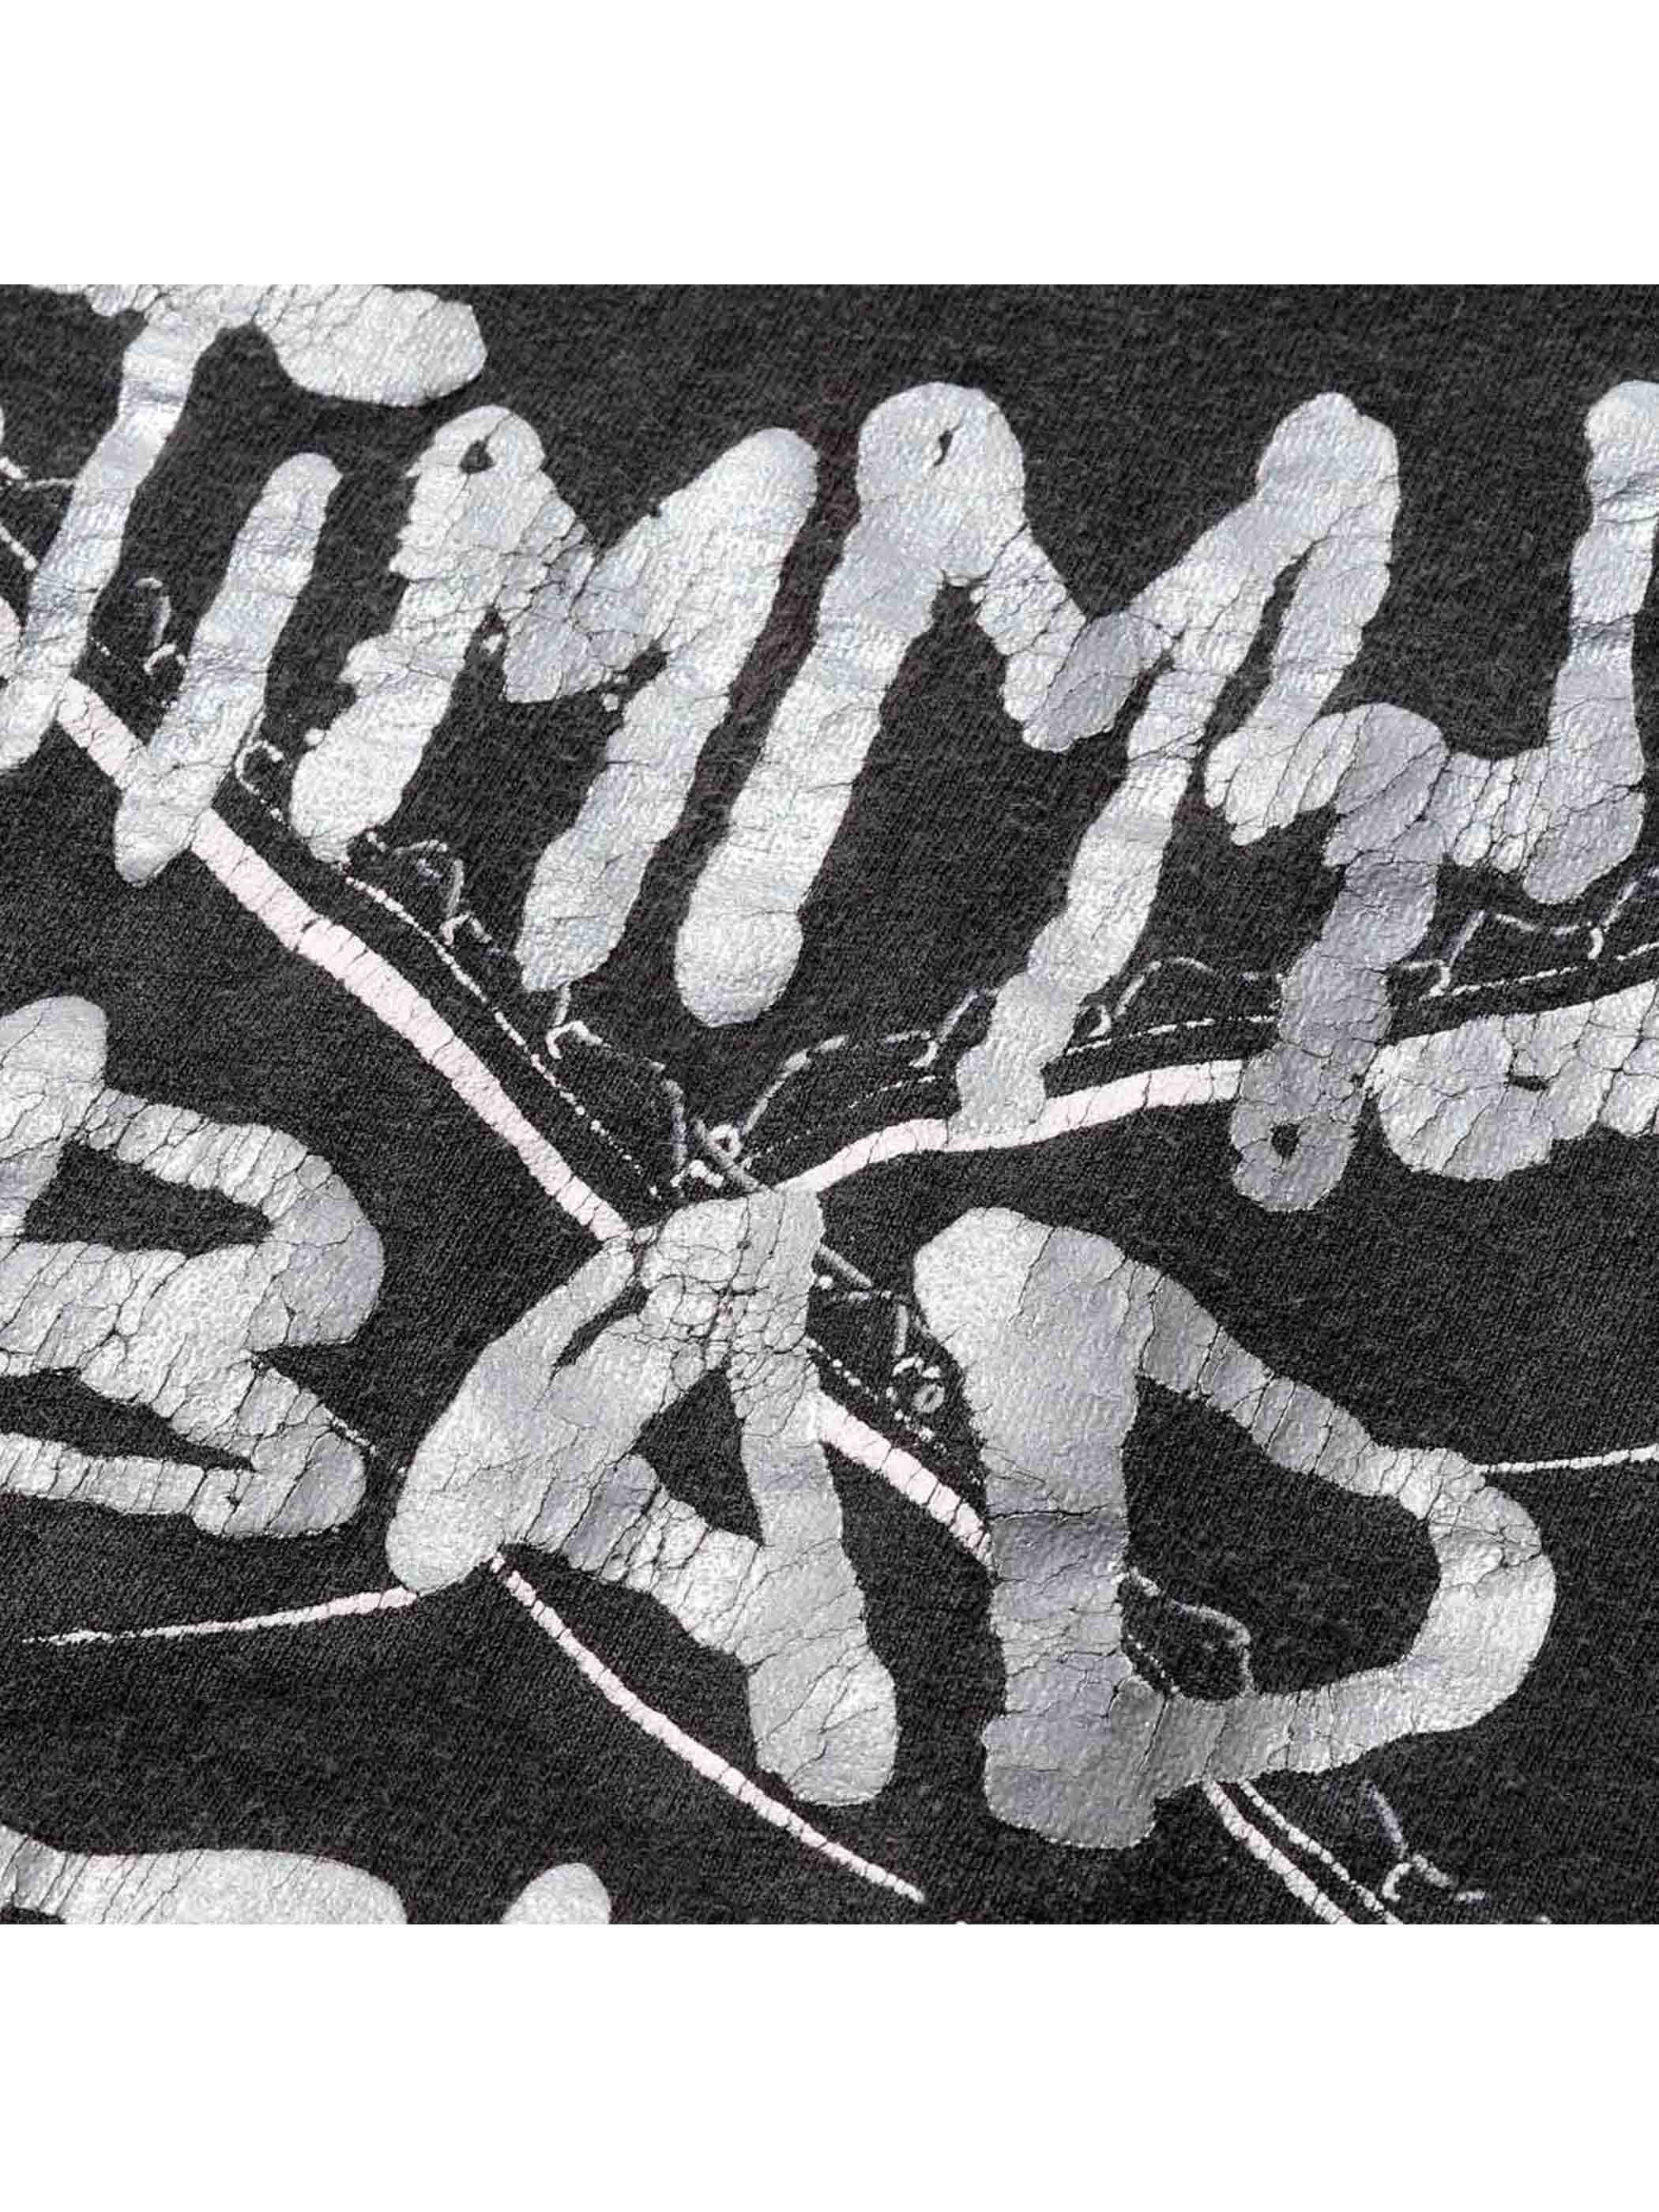 "80's~ JIMMY'Z ""JIMMYZ BAD GIRLZ"" USA製 プリントTシャツ [FREE]"